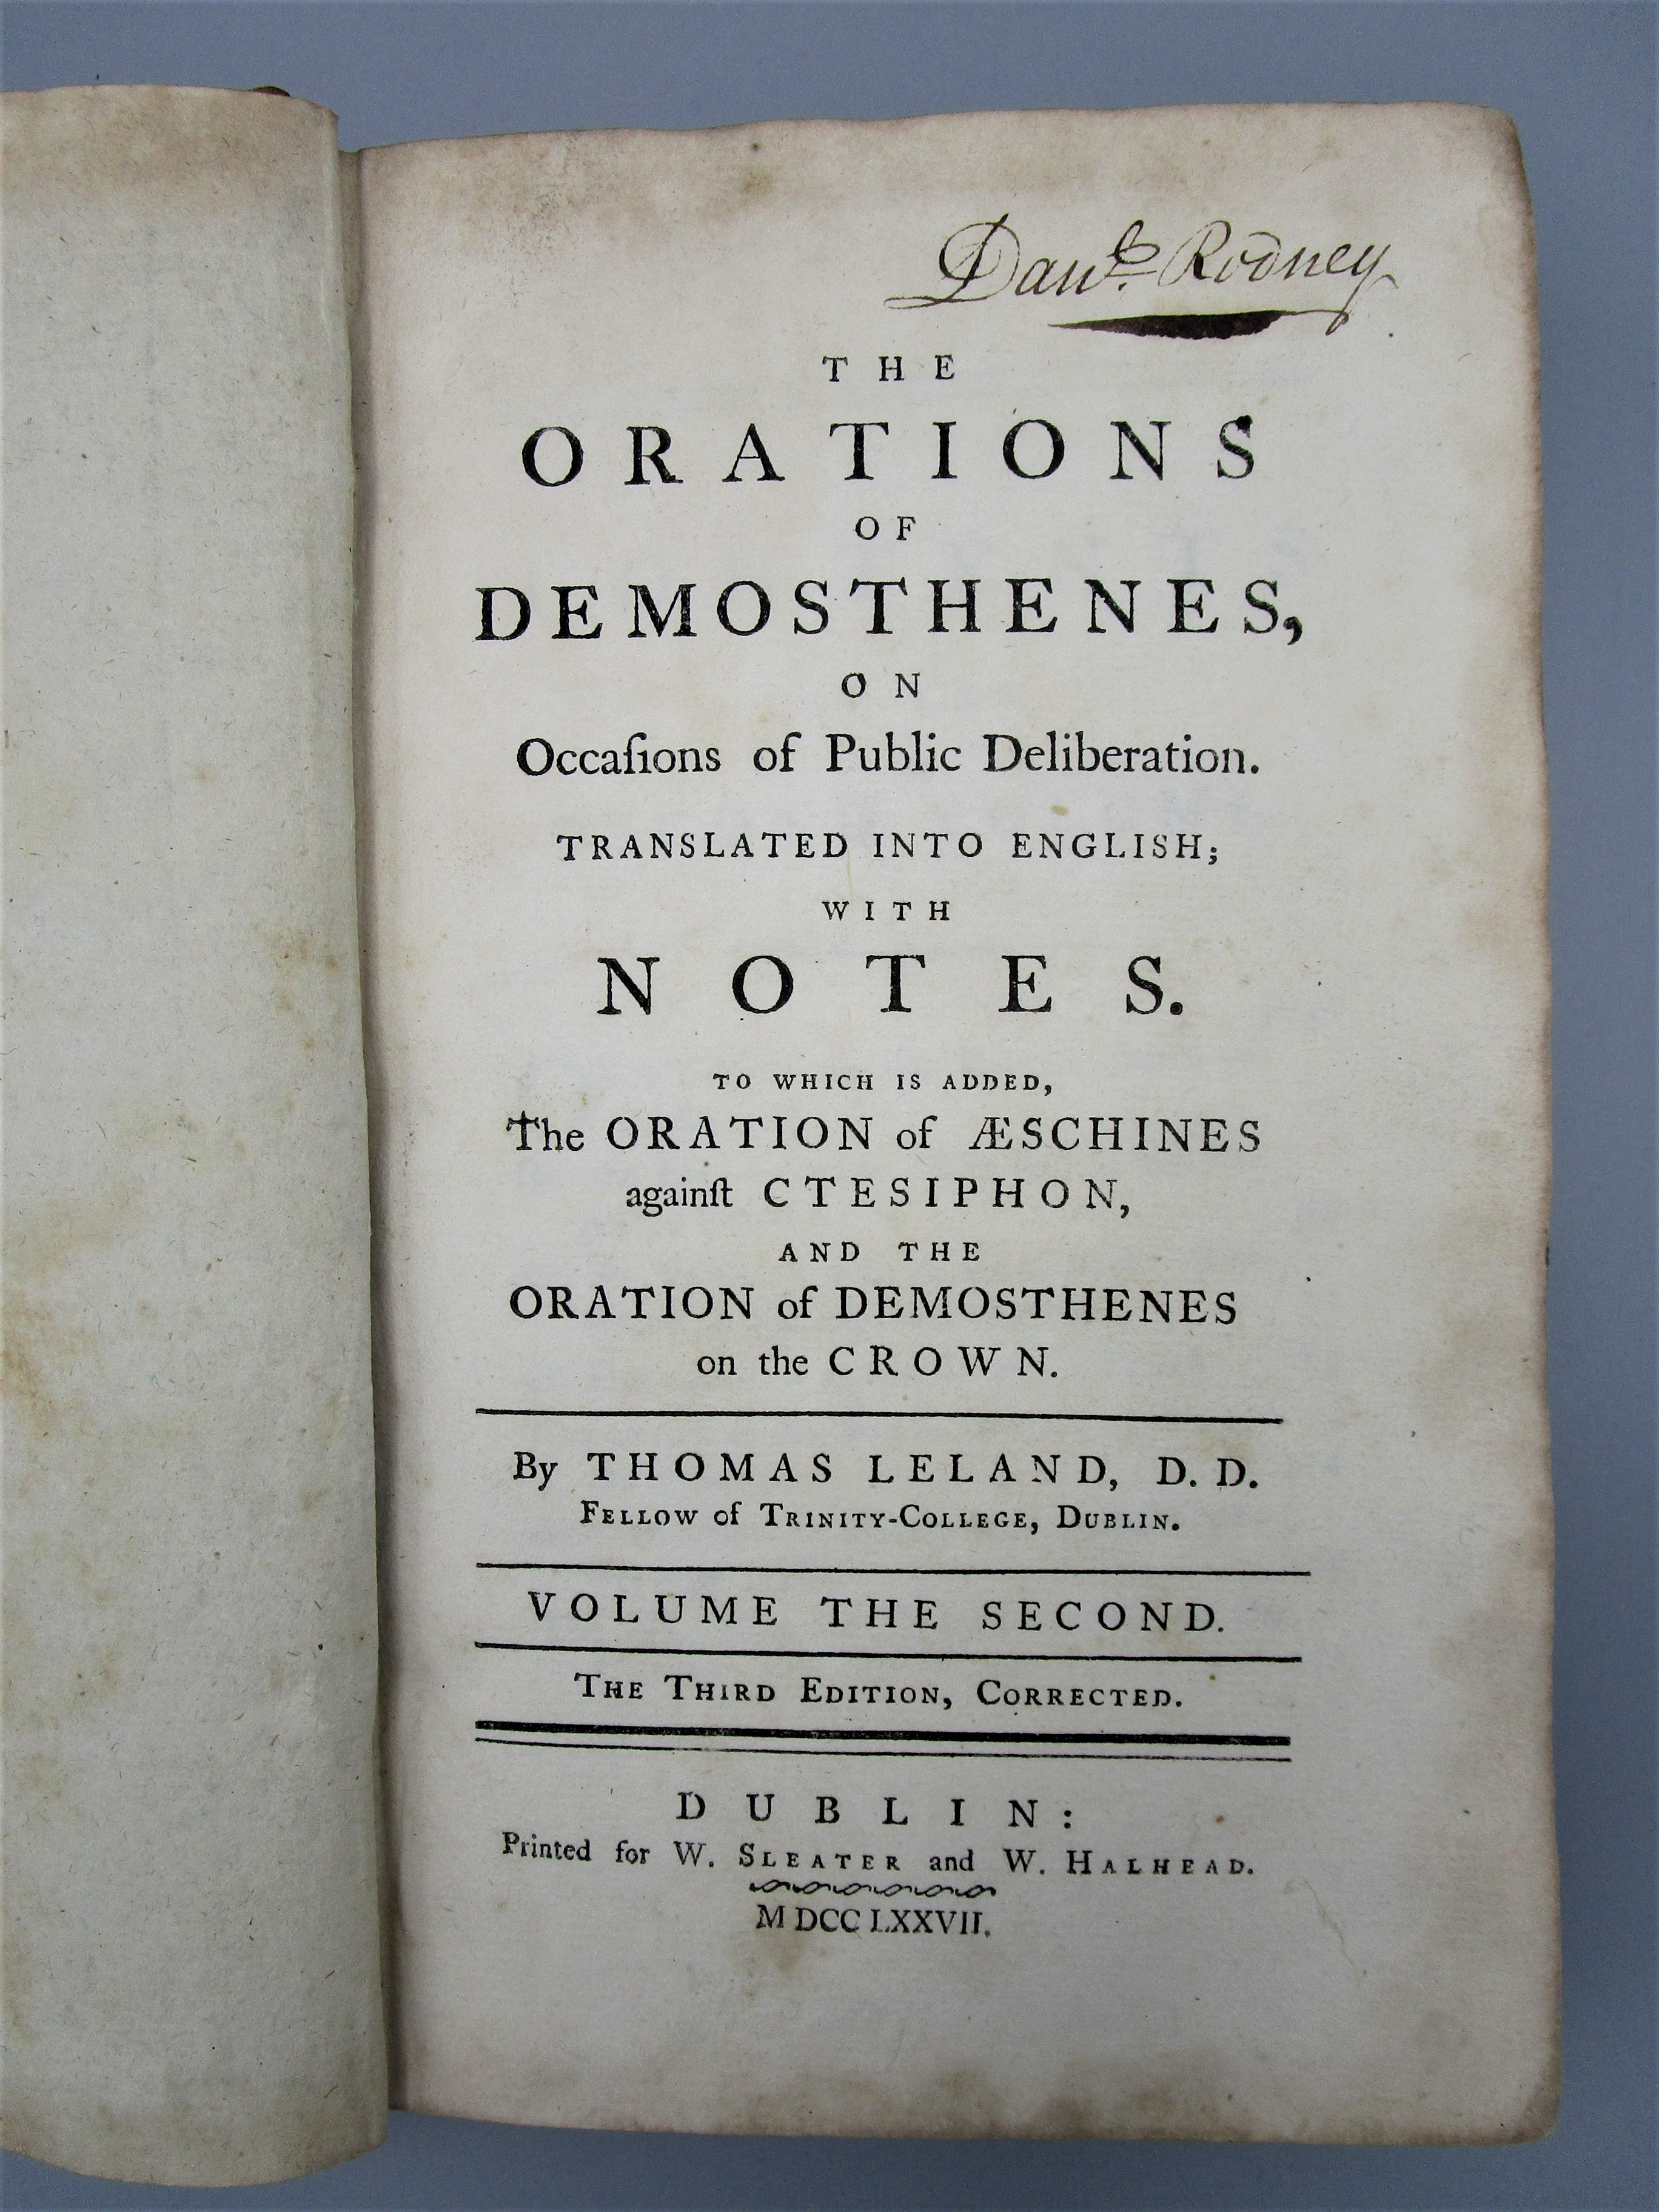 THE ORATIONS OF DEMOSTHENES, by Thomas Leland - 1777 [Vol 2]